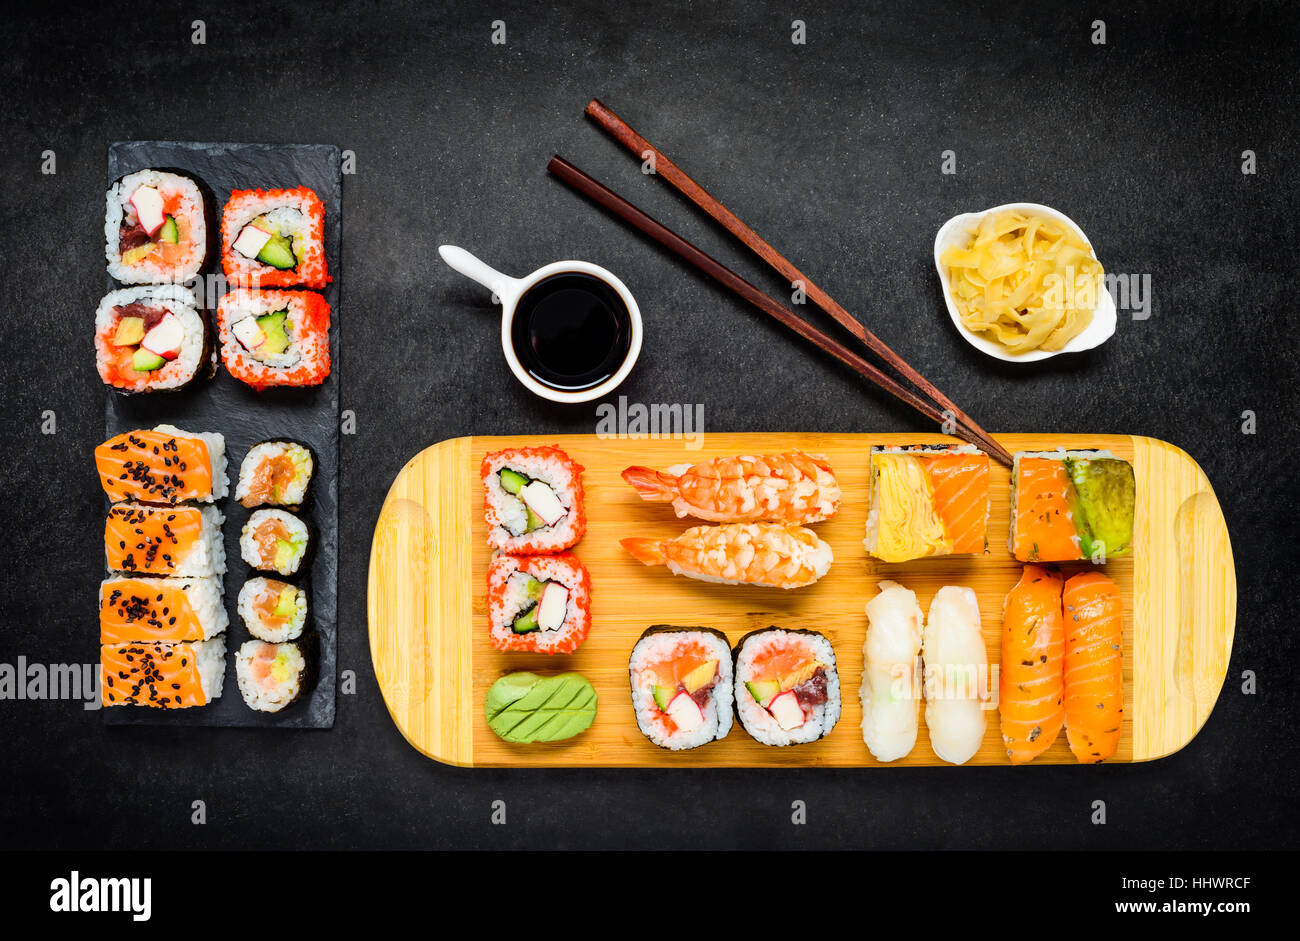 sashimi and different sushi types with soy sauce and tsukemono stock photo 131488911 alamy. Black Bedroom Furniture Sets. Home Design Ideas